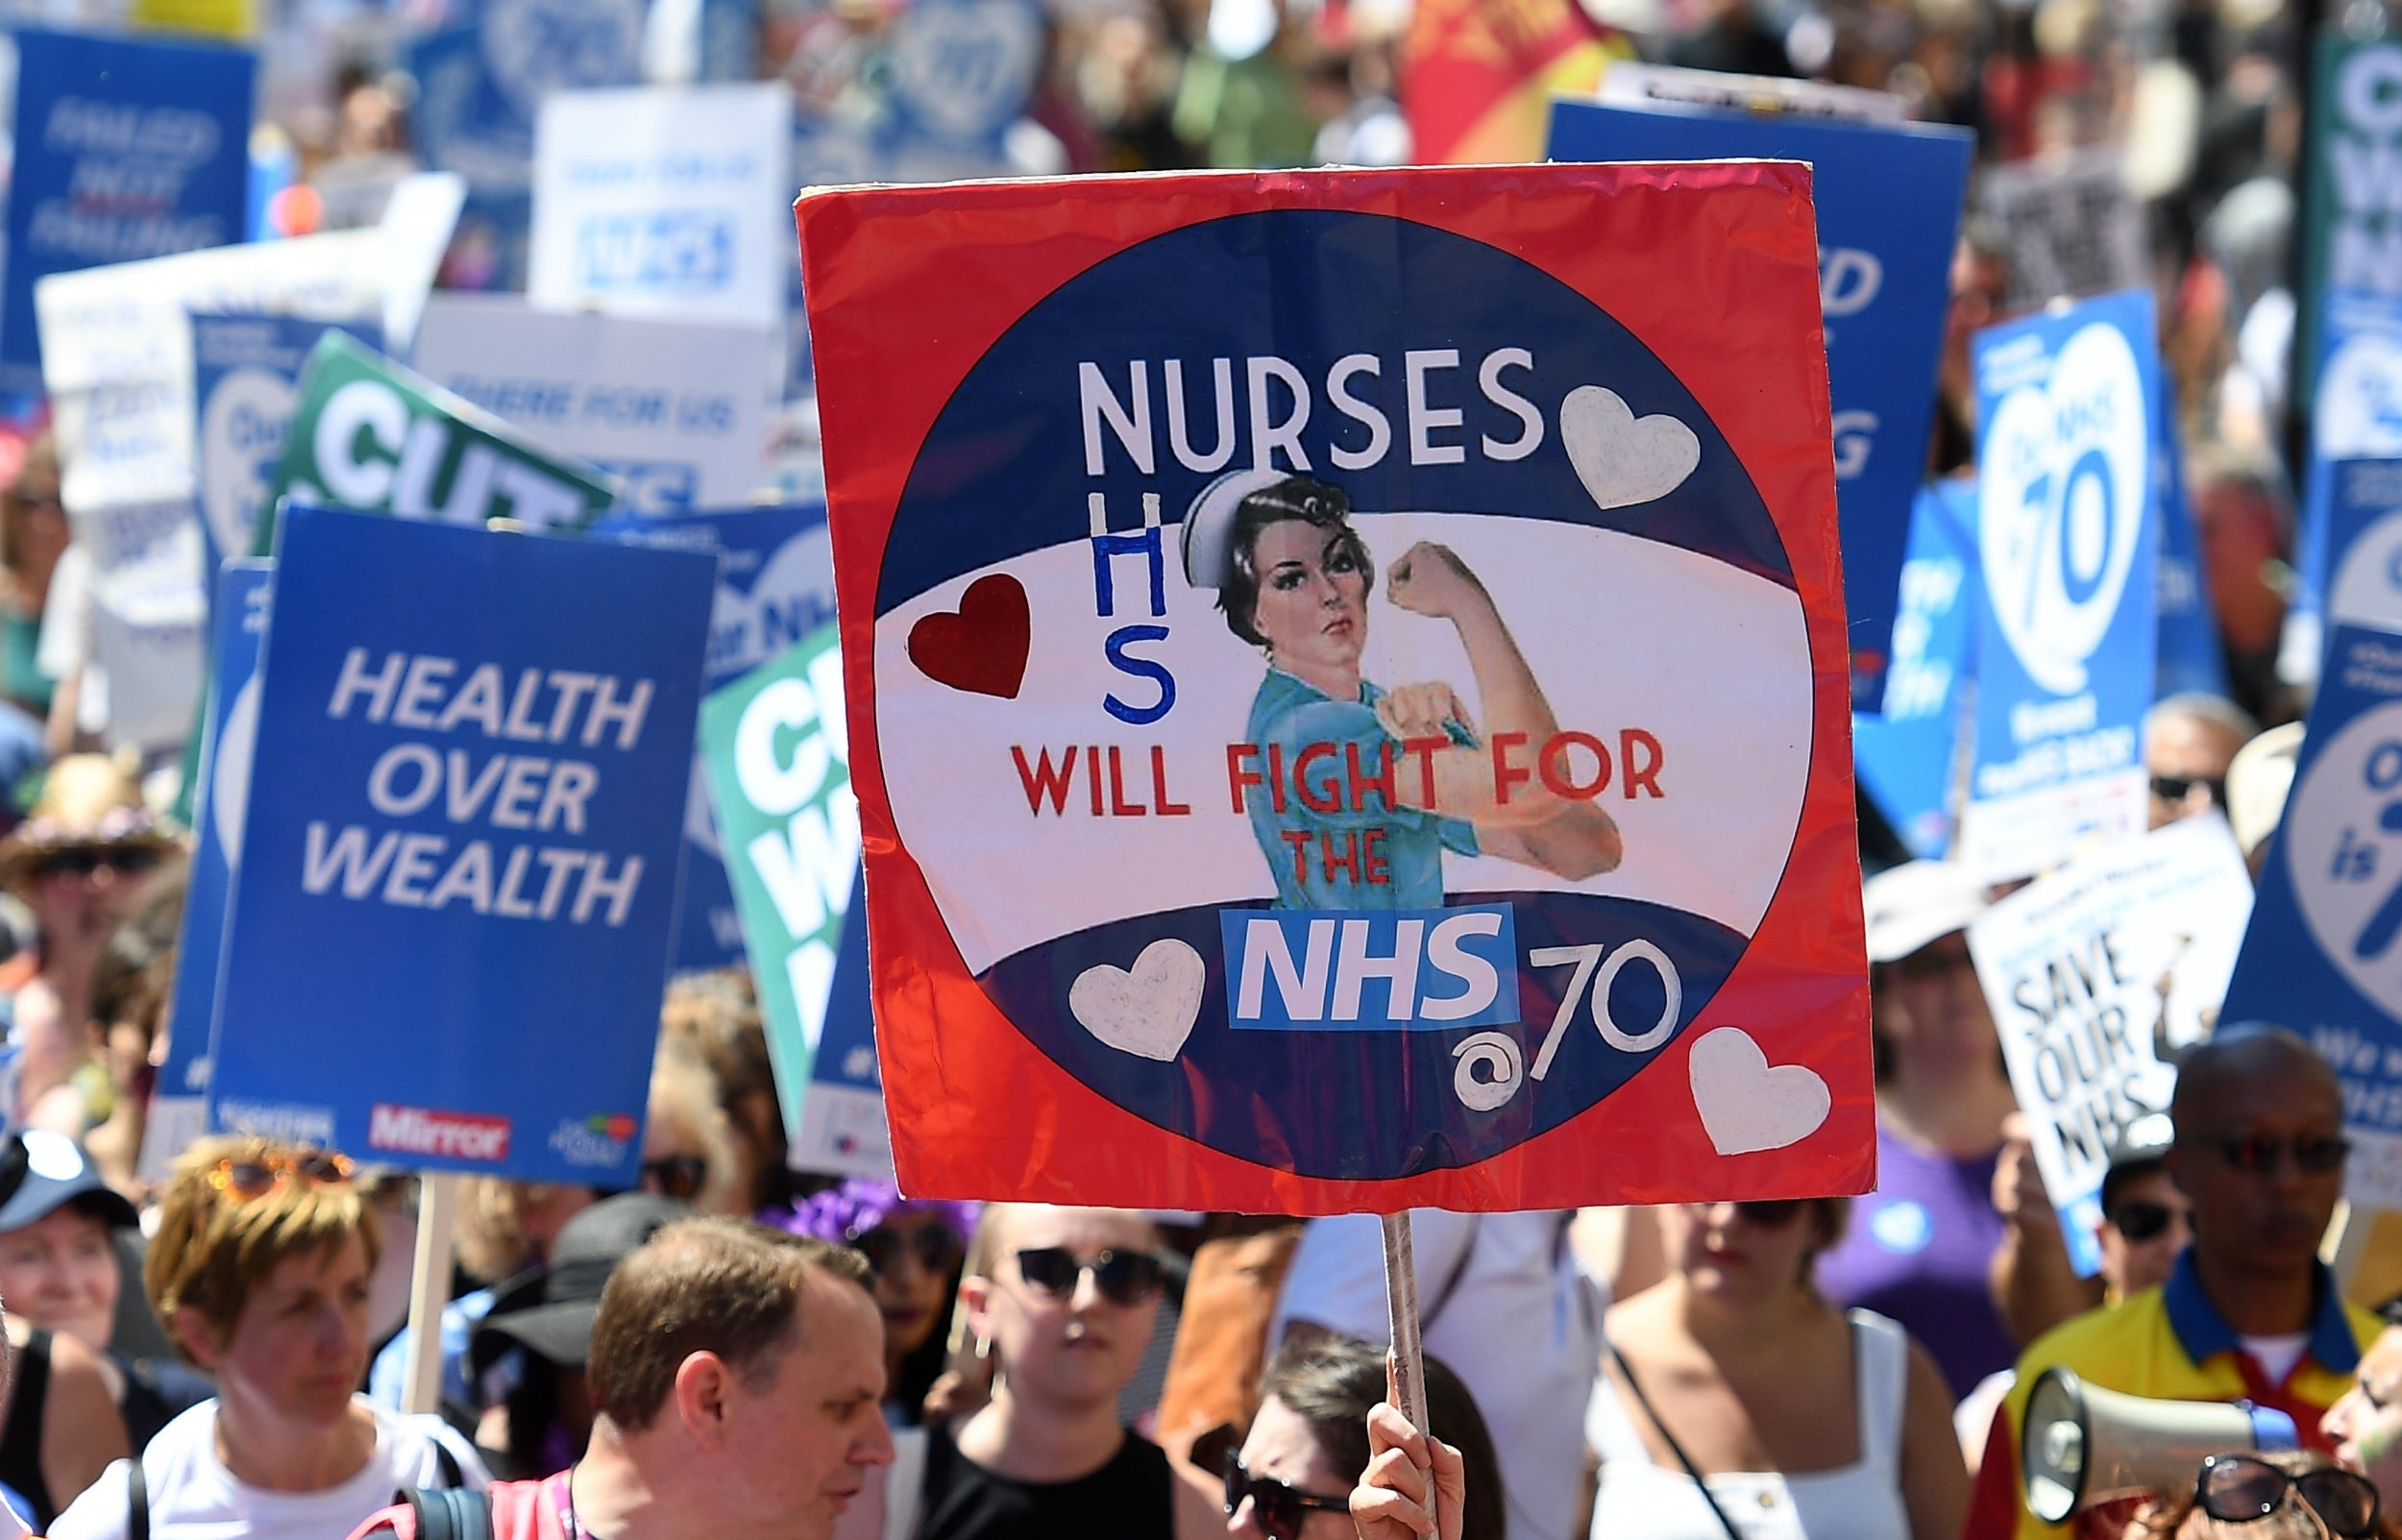 Nine Out Of 10 Hospitals Are Short Of Nurses Uk News >> One In Four Nhs Wards Has Dangerously Low Numbers Of Nurses